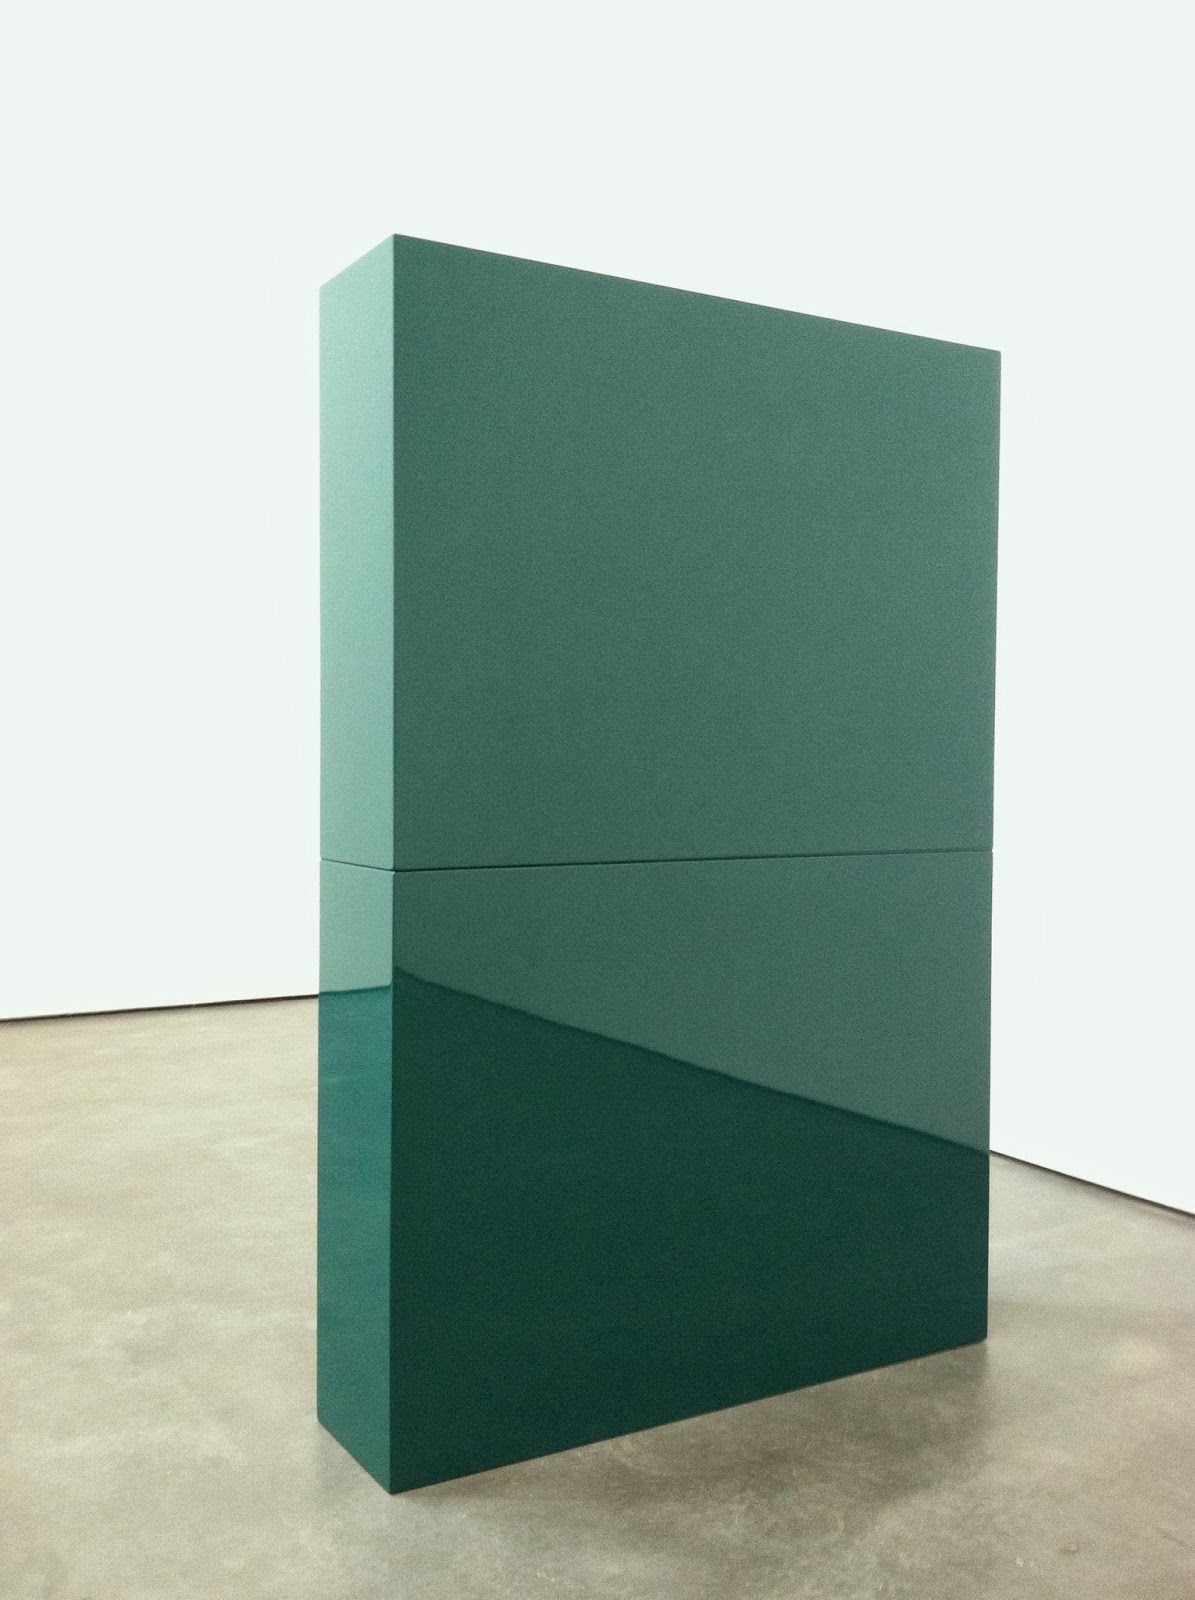 Fig. 2. John McCracken, Green Slab in Two Parts (1966)